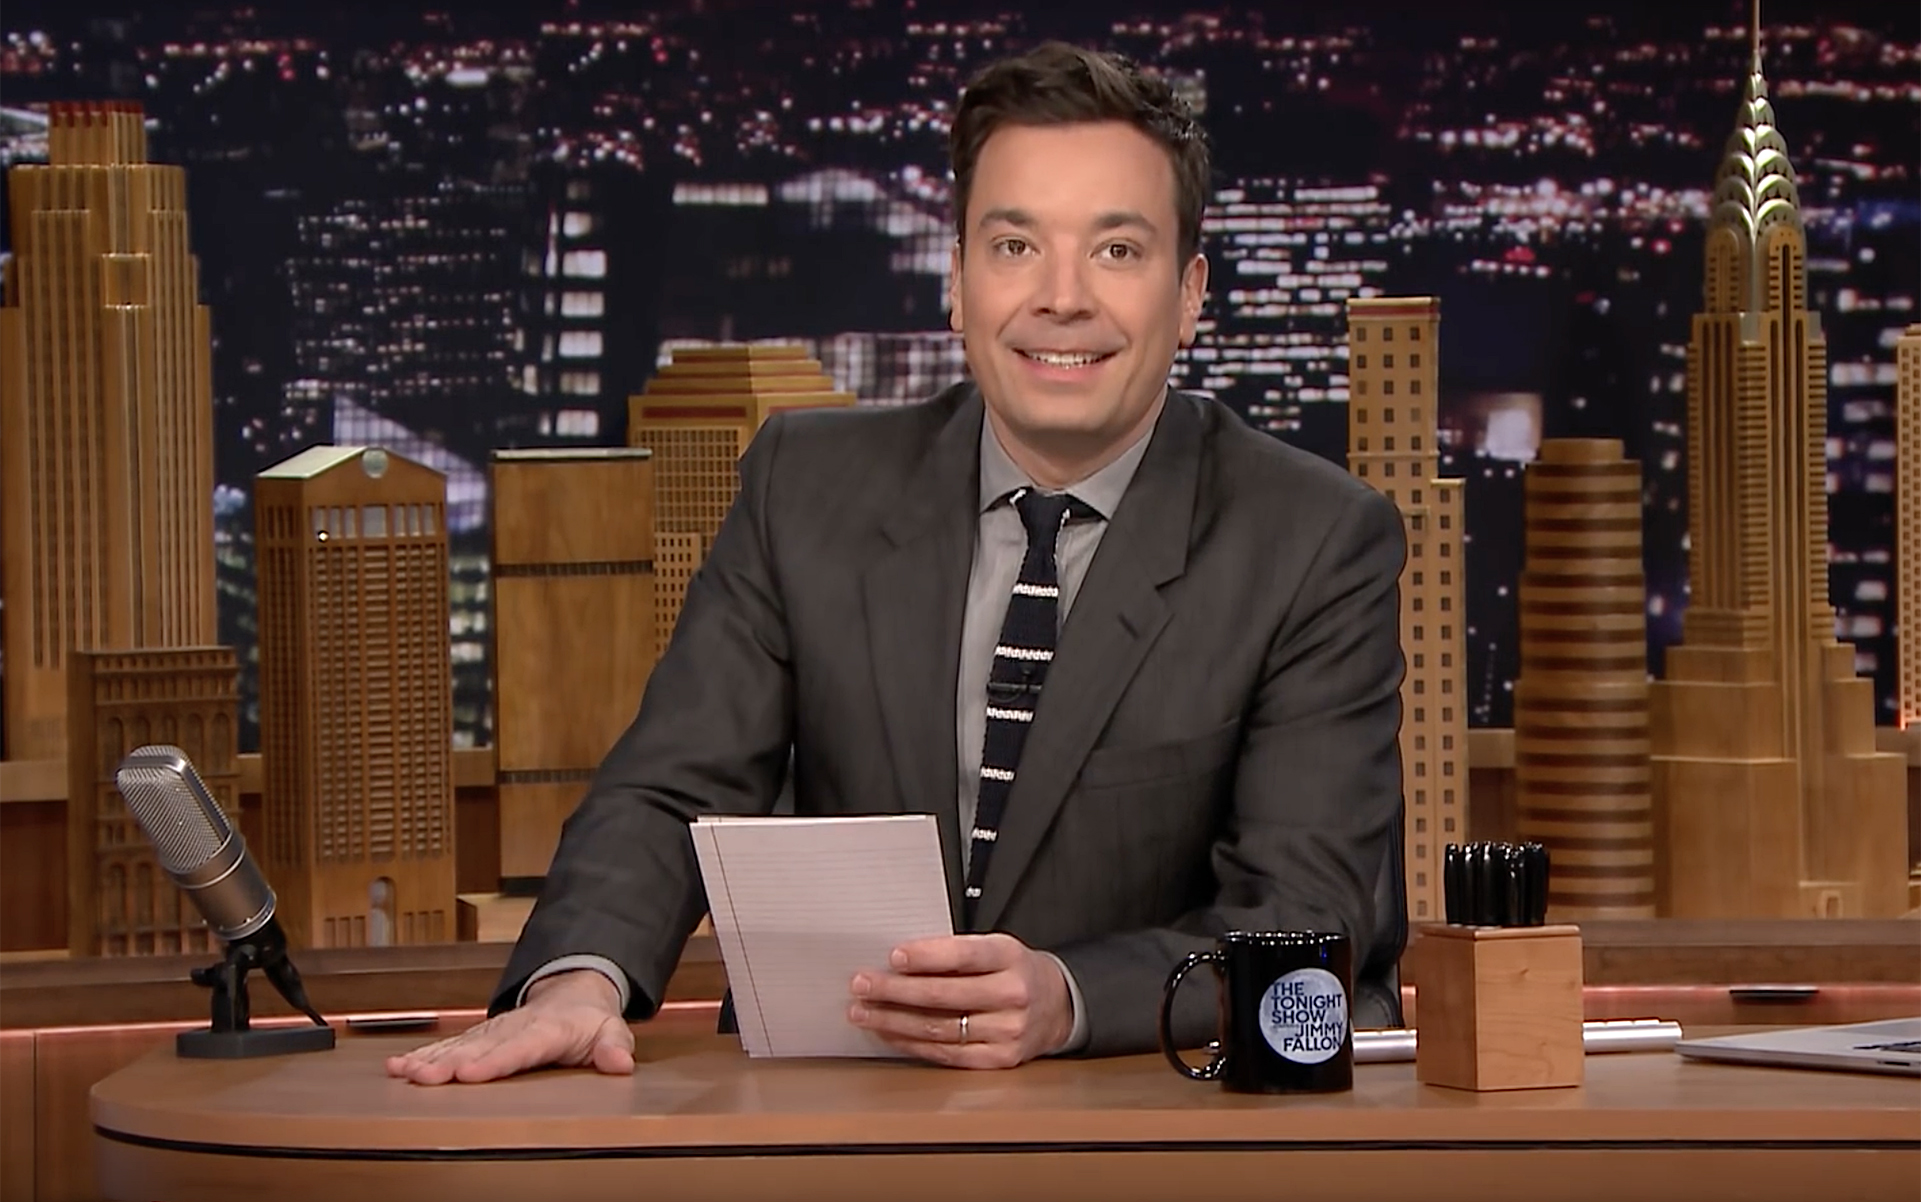 Watch Jimmy Fallon's Funniest Tonight Show Cannabis Segments